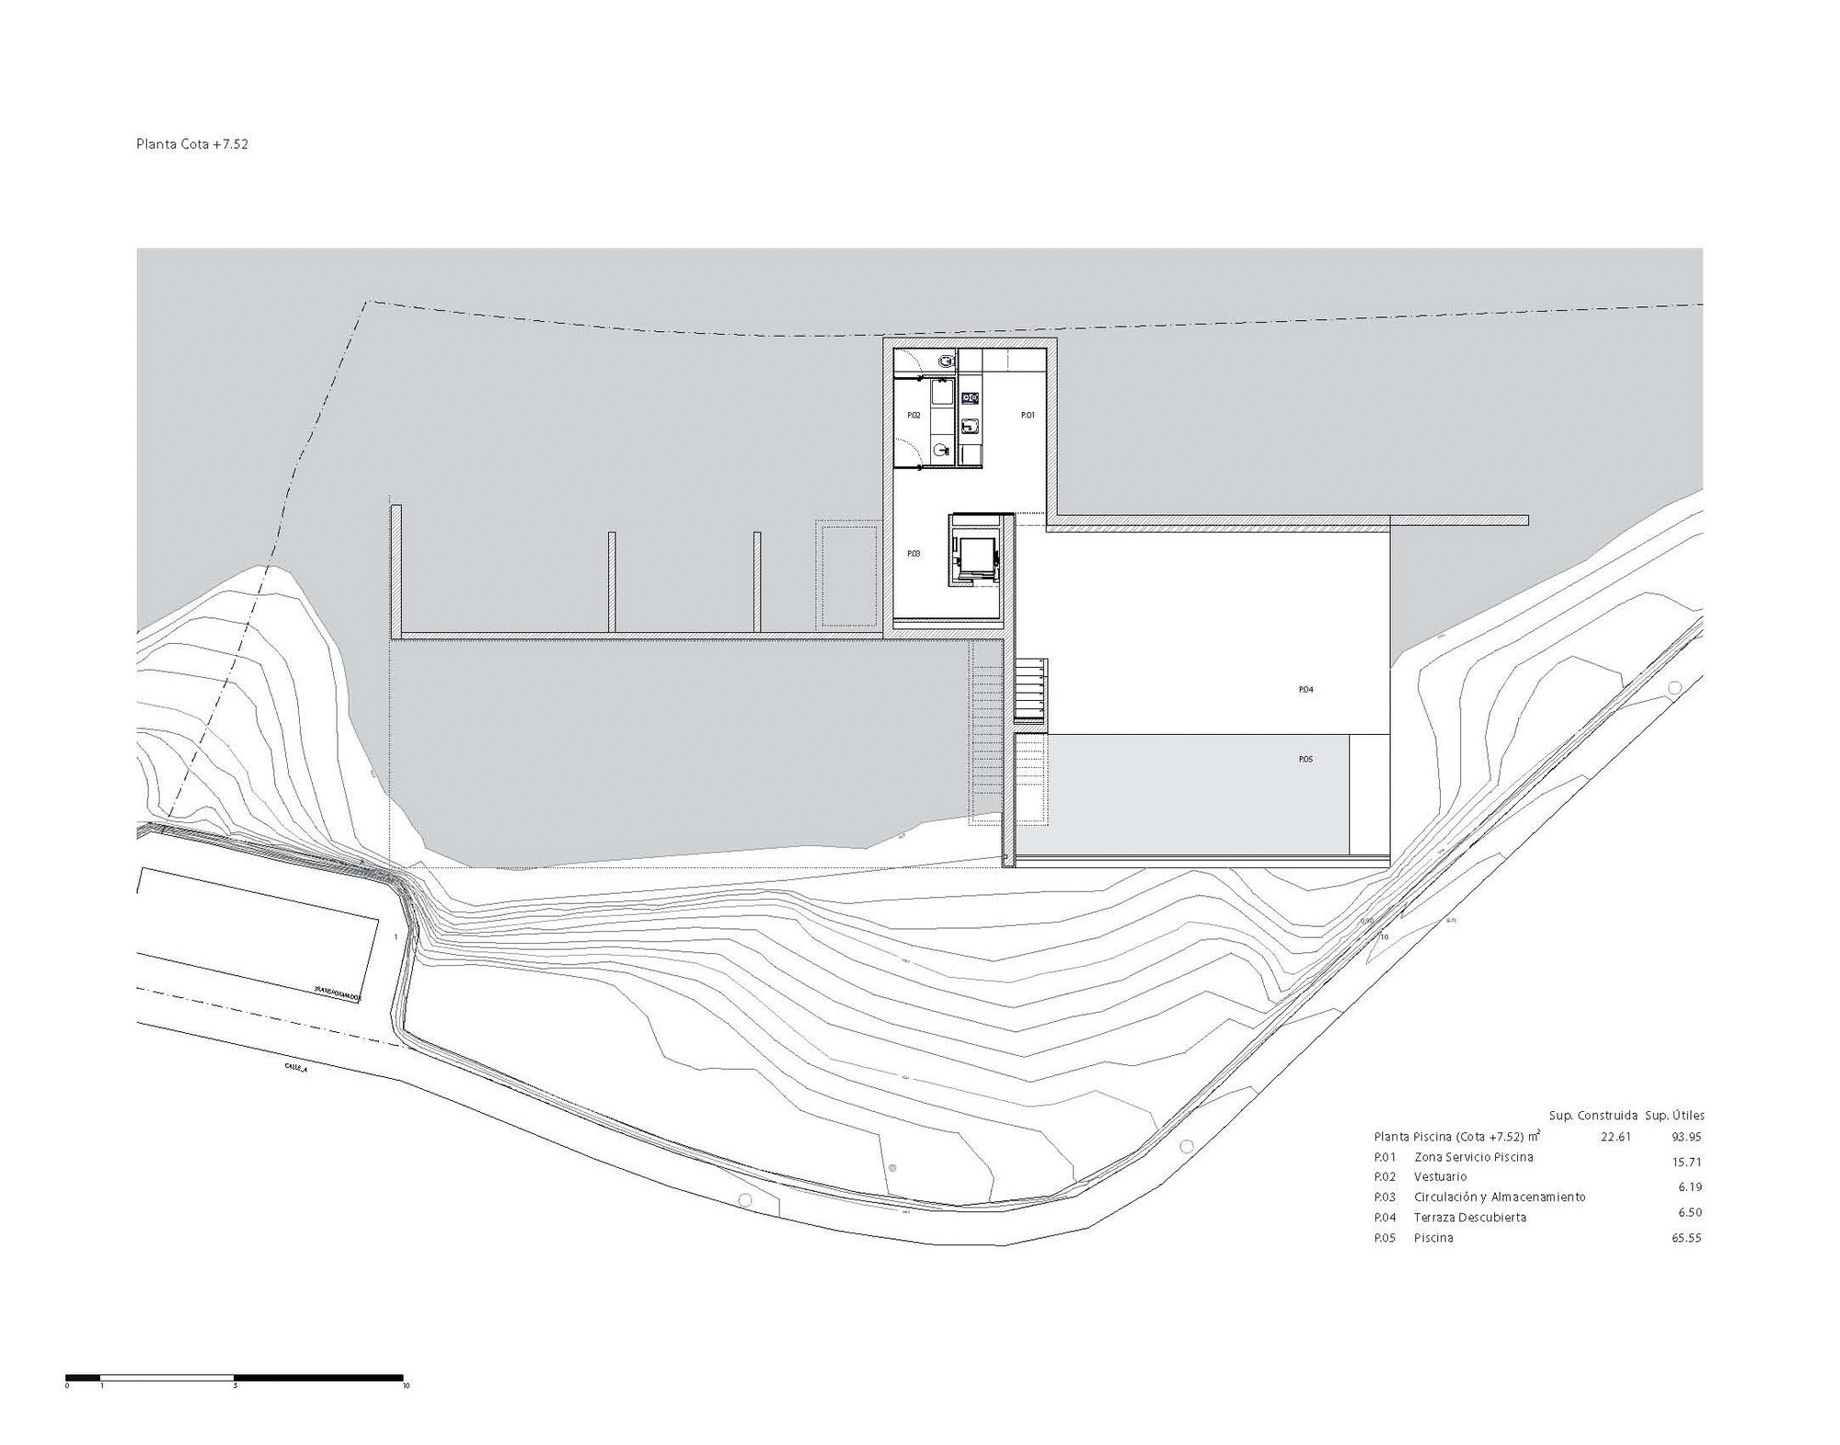 Floor Plans - Casa del Acantilado Luxury Residence - Calp, Alicante, Spain